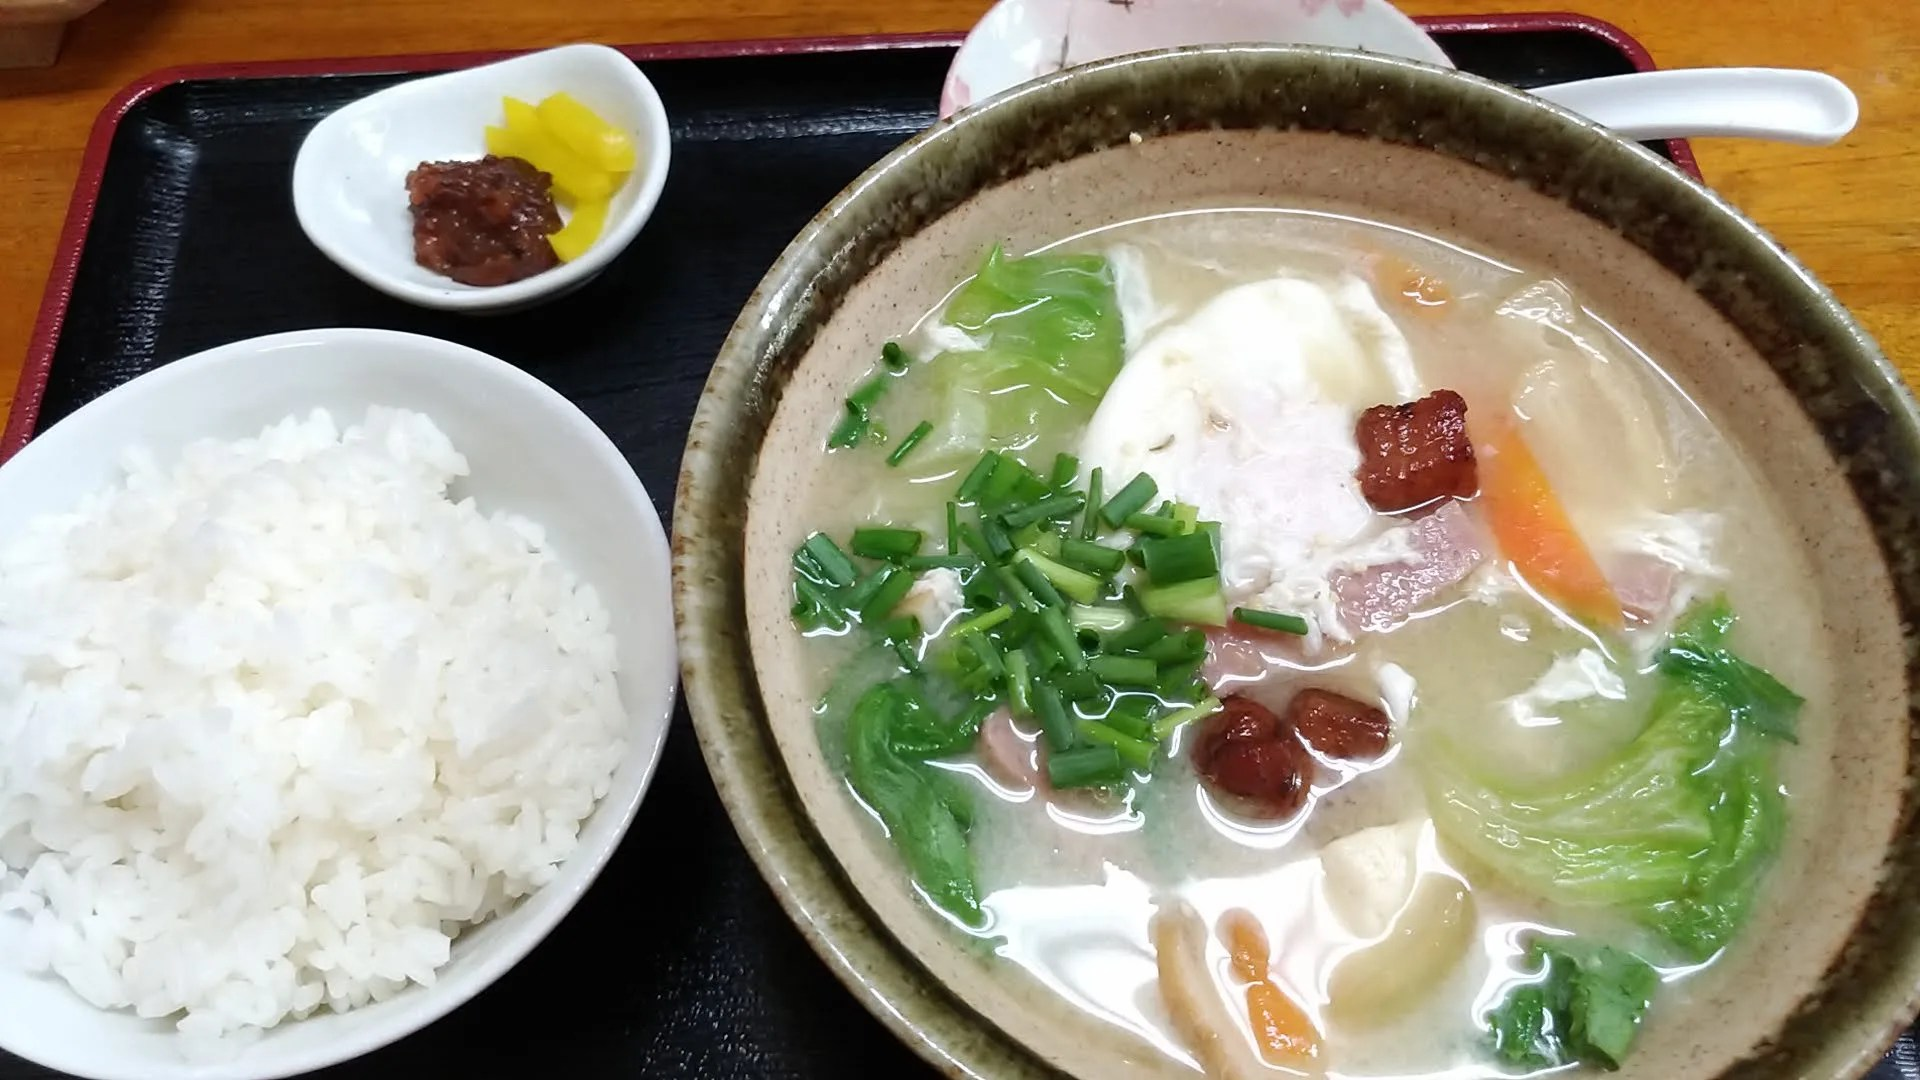 the miso soup of Mi-yaguwa